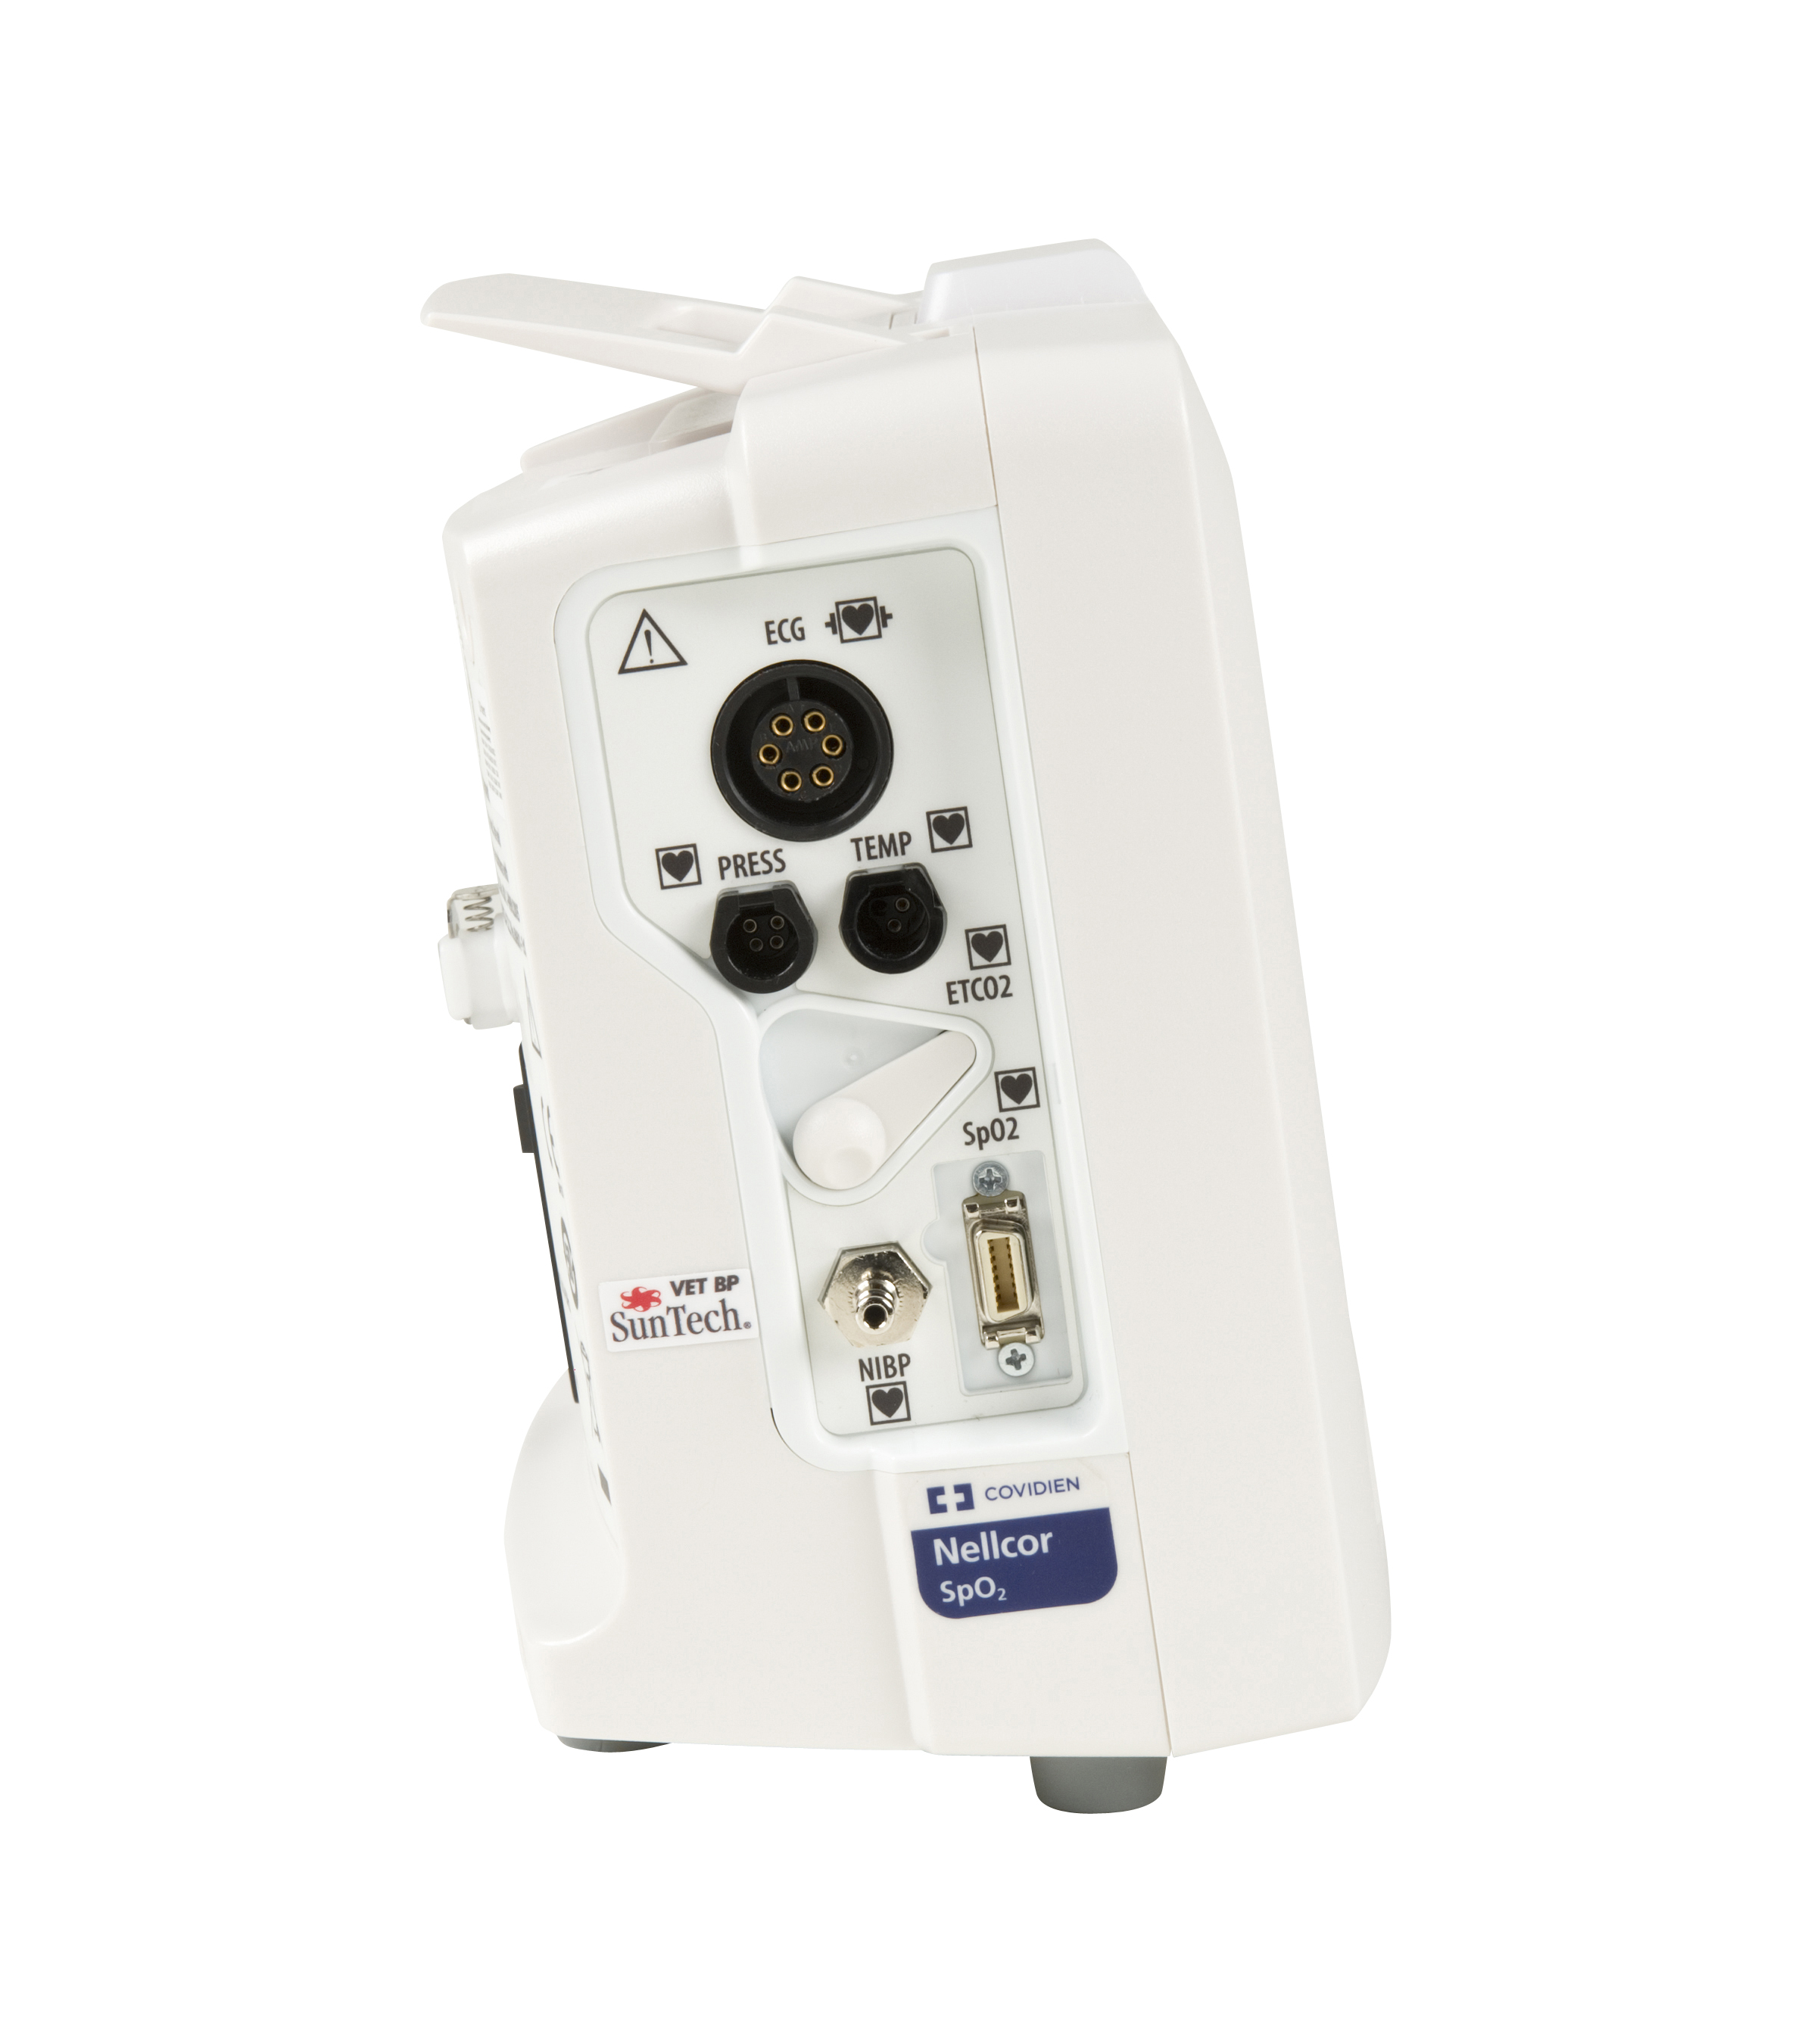 HS-VPM15 Vet Patient Monitor with 1 hour Battery, Printer, EtCo2 connector, EU standard Power cord